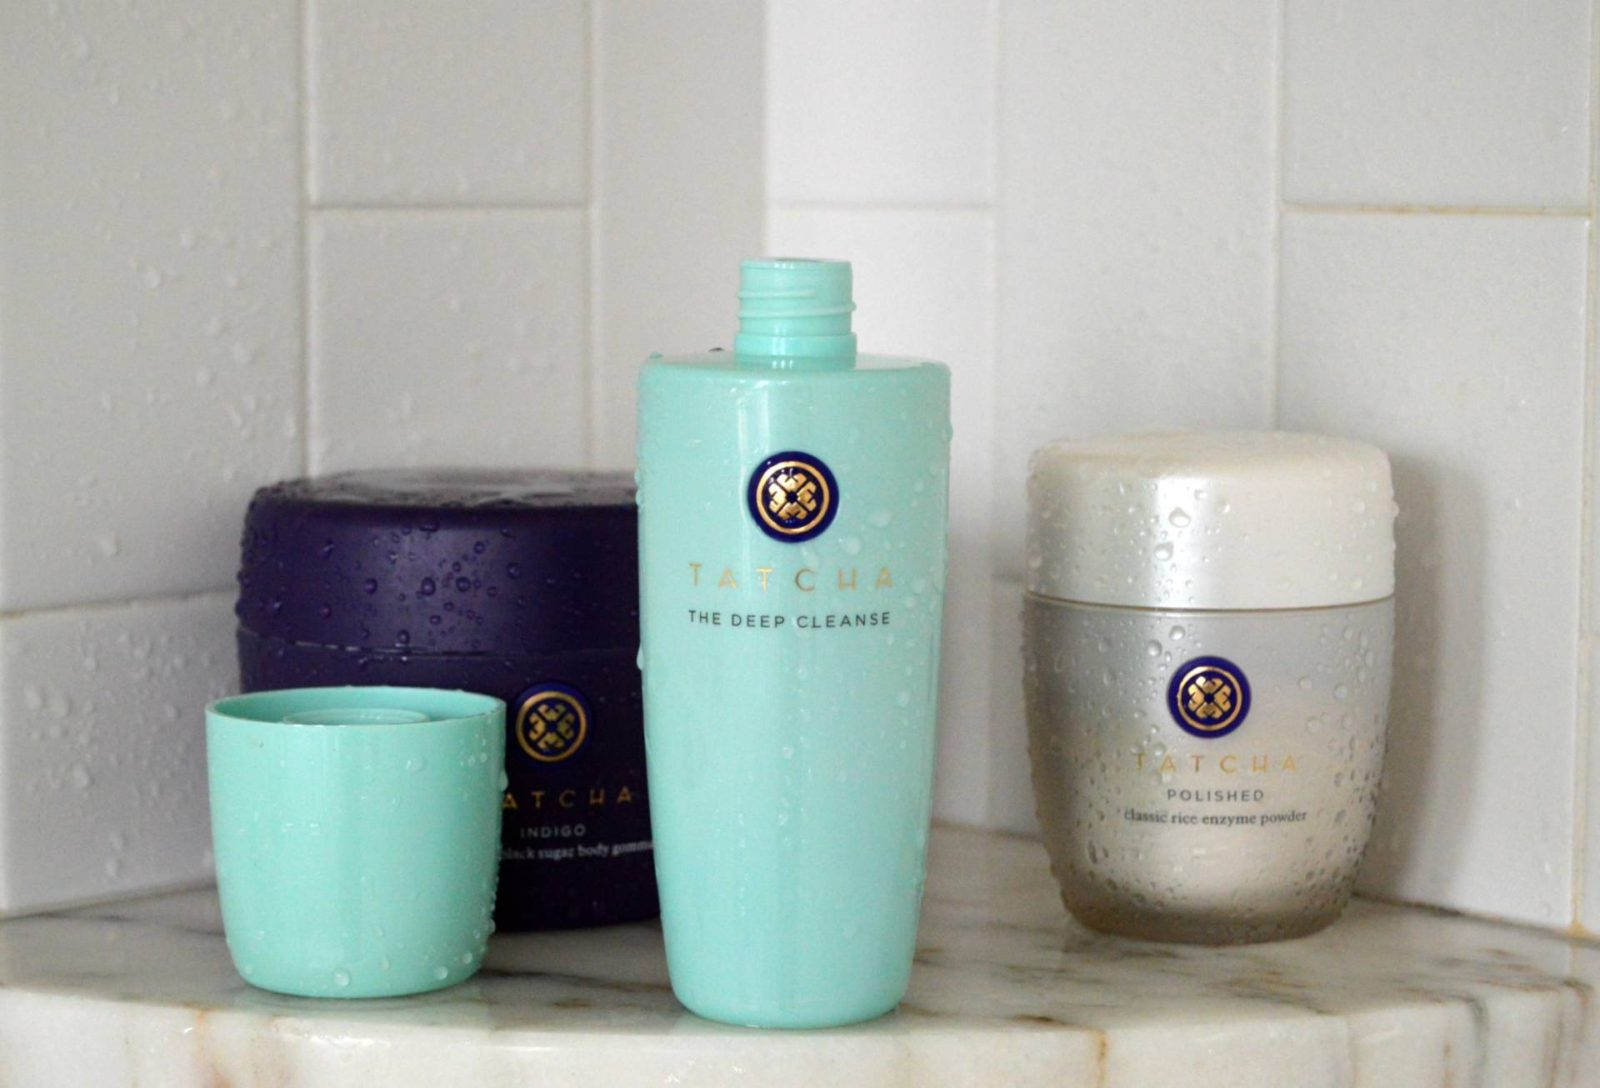 Hooked On: TATCHA The Deep Cleanse